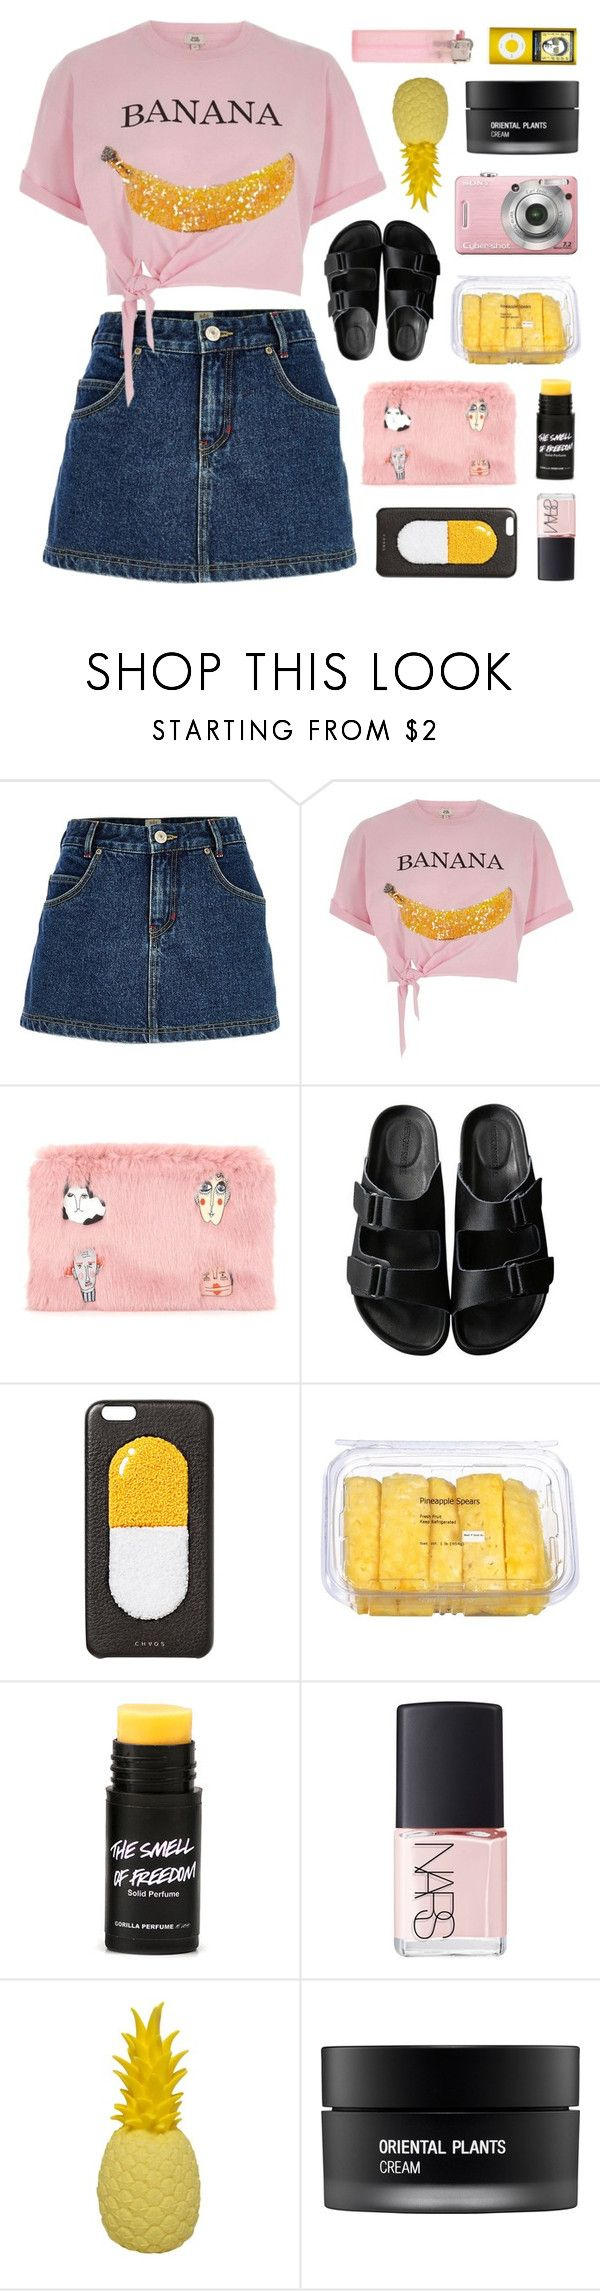 """""""THE SMELL OF FREEDOM"""" by emmas-fashion-diary ❤ liked on Polyvore featuring River Island, Shrimps, American Rag Cie, Chaos, NARS Cosmetics and Koh Gen Do"""